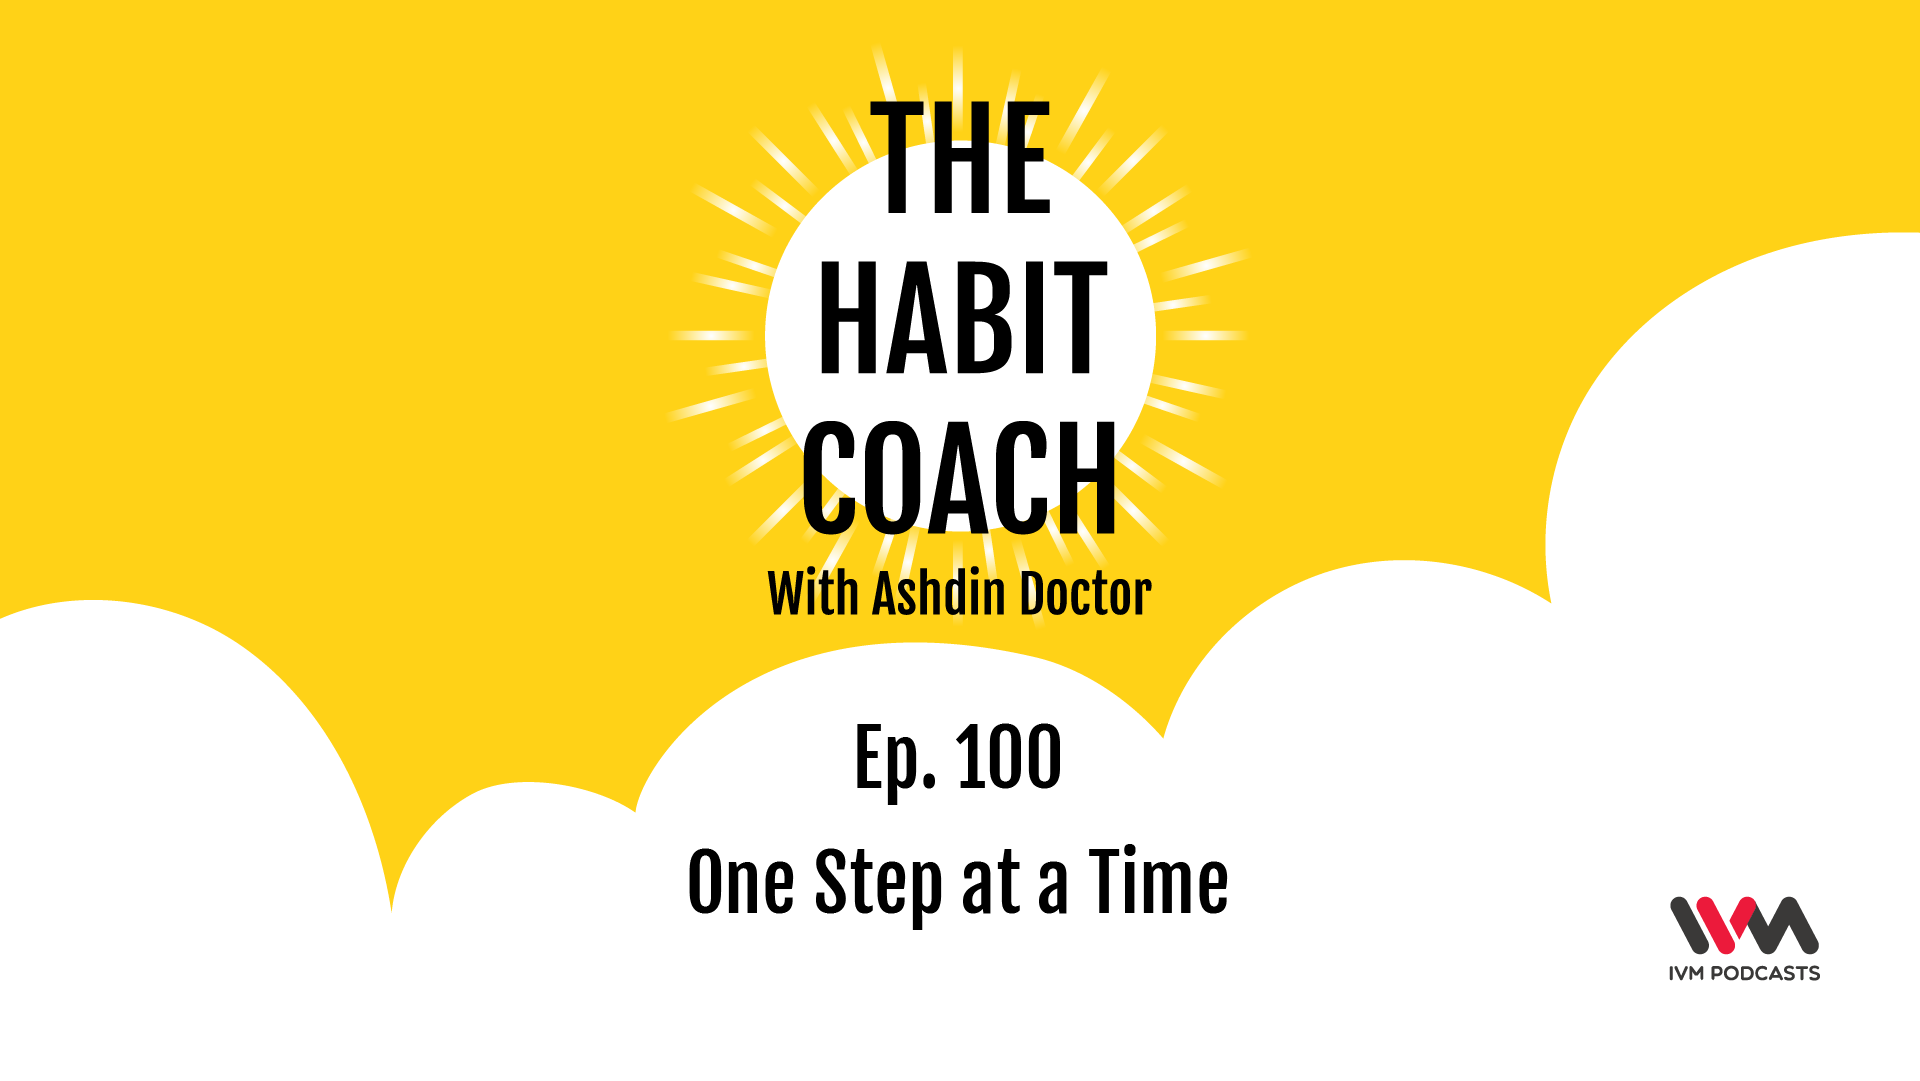 TheHabitCoachEpisode100.png